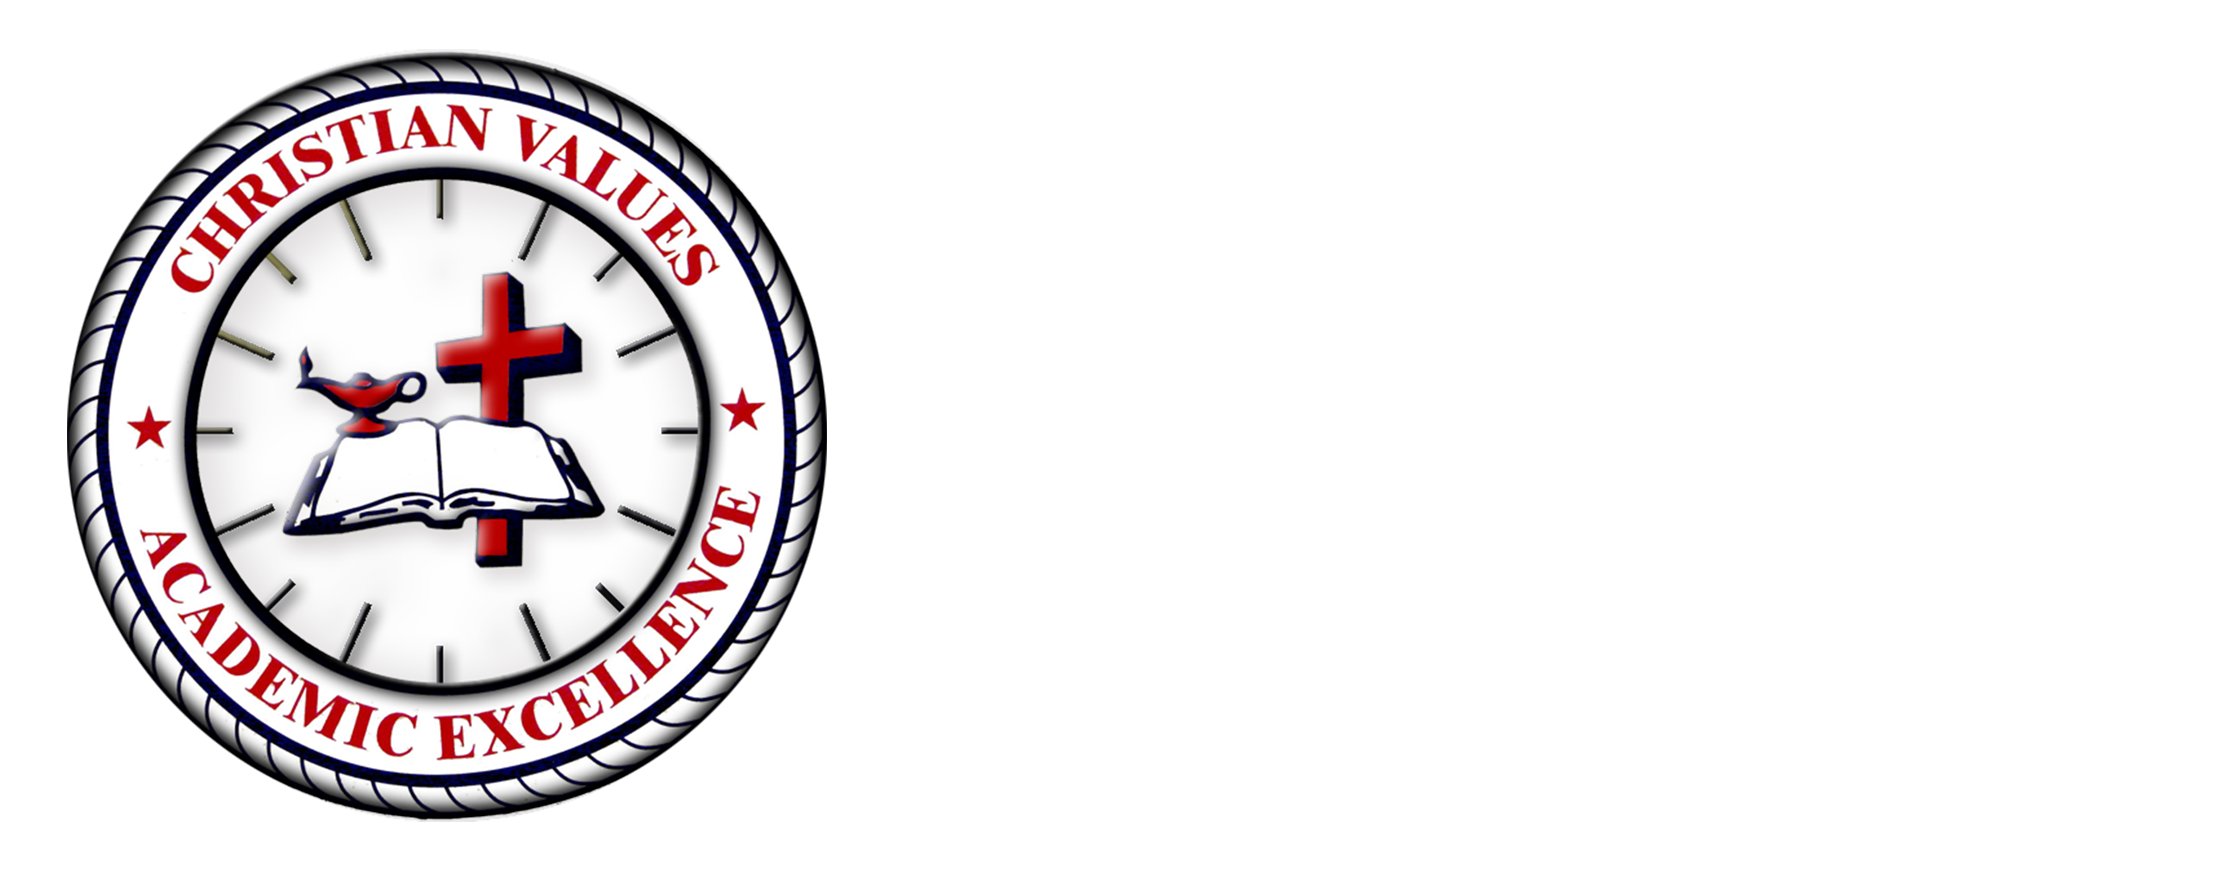 Bay Area Christian School